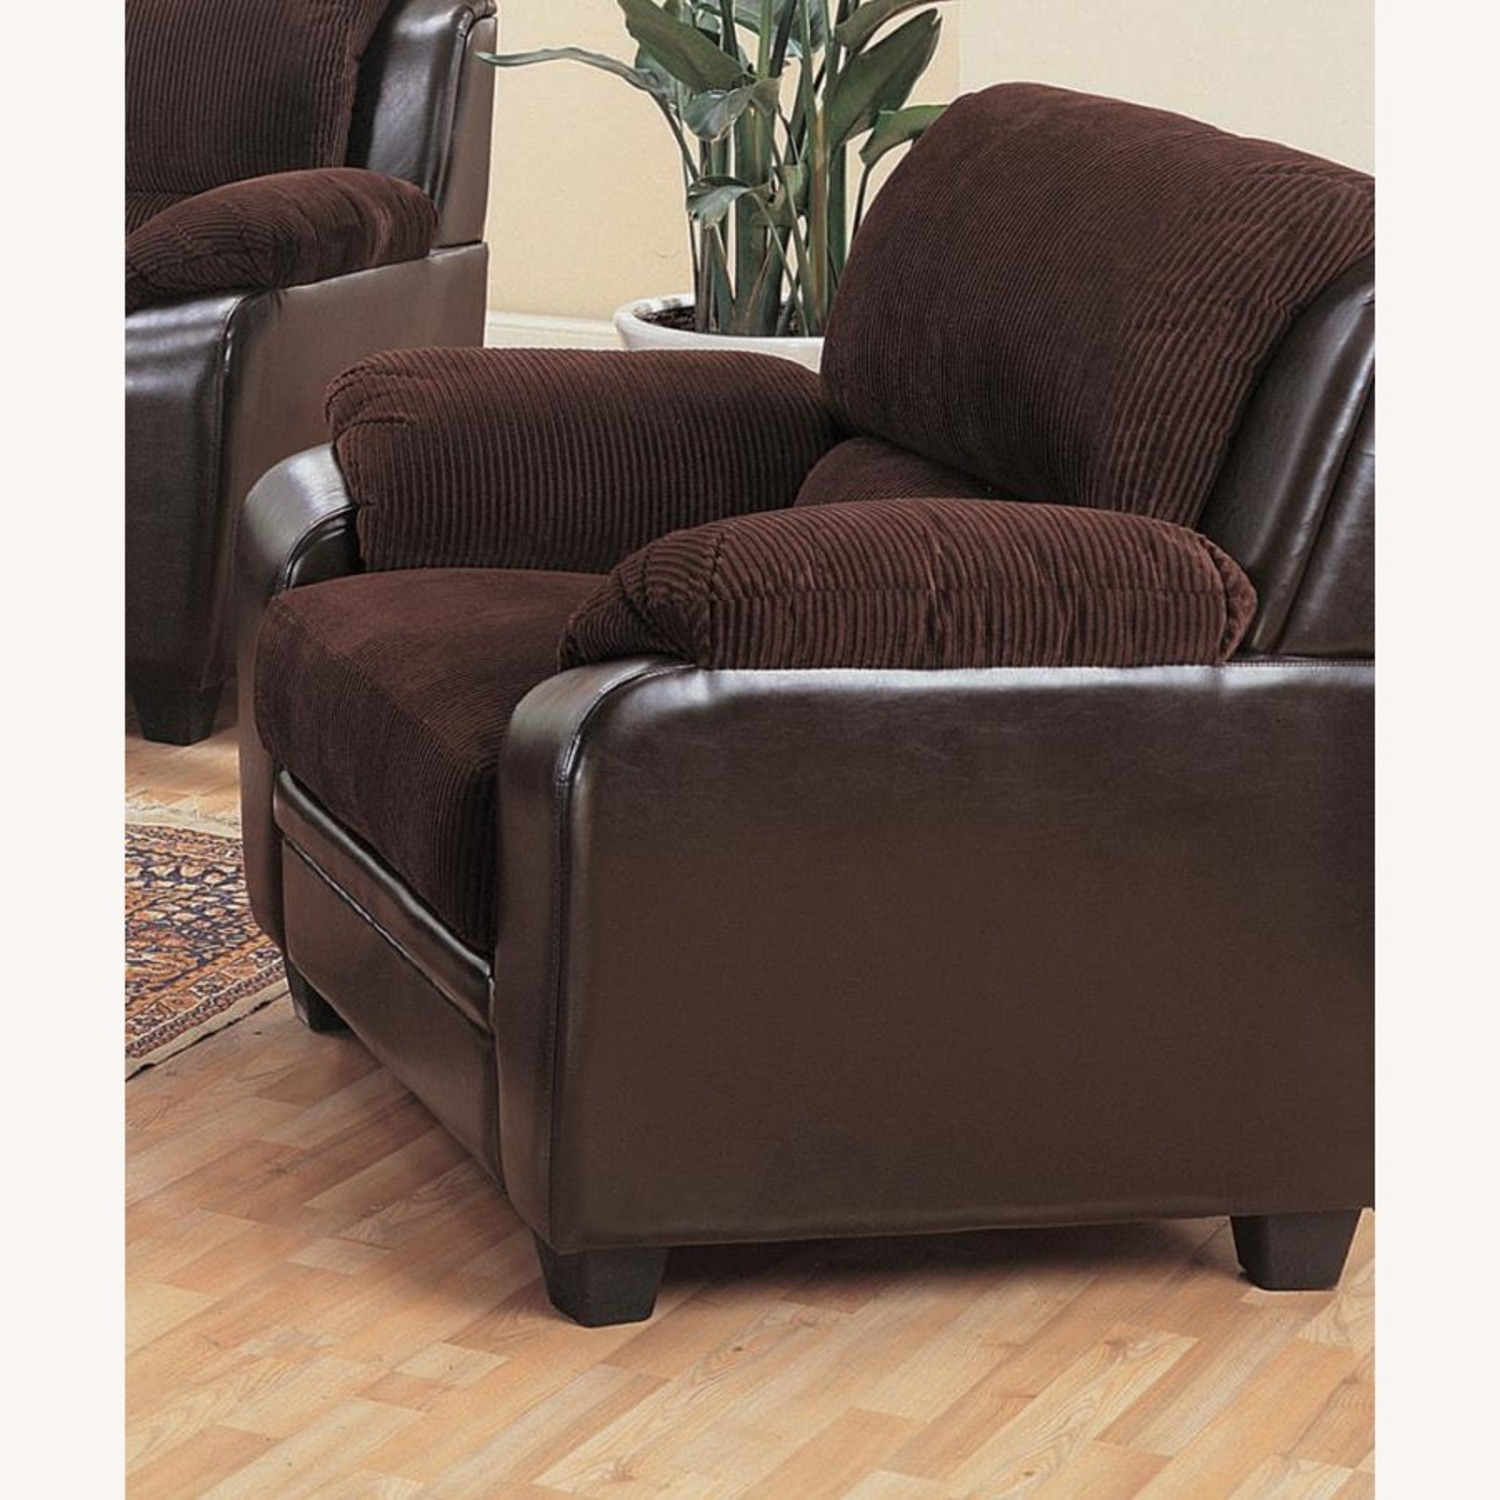 Chair In Rich Chocolate Leatherette - image-1